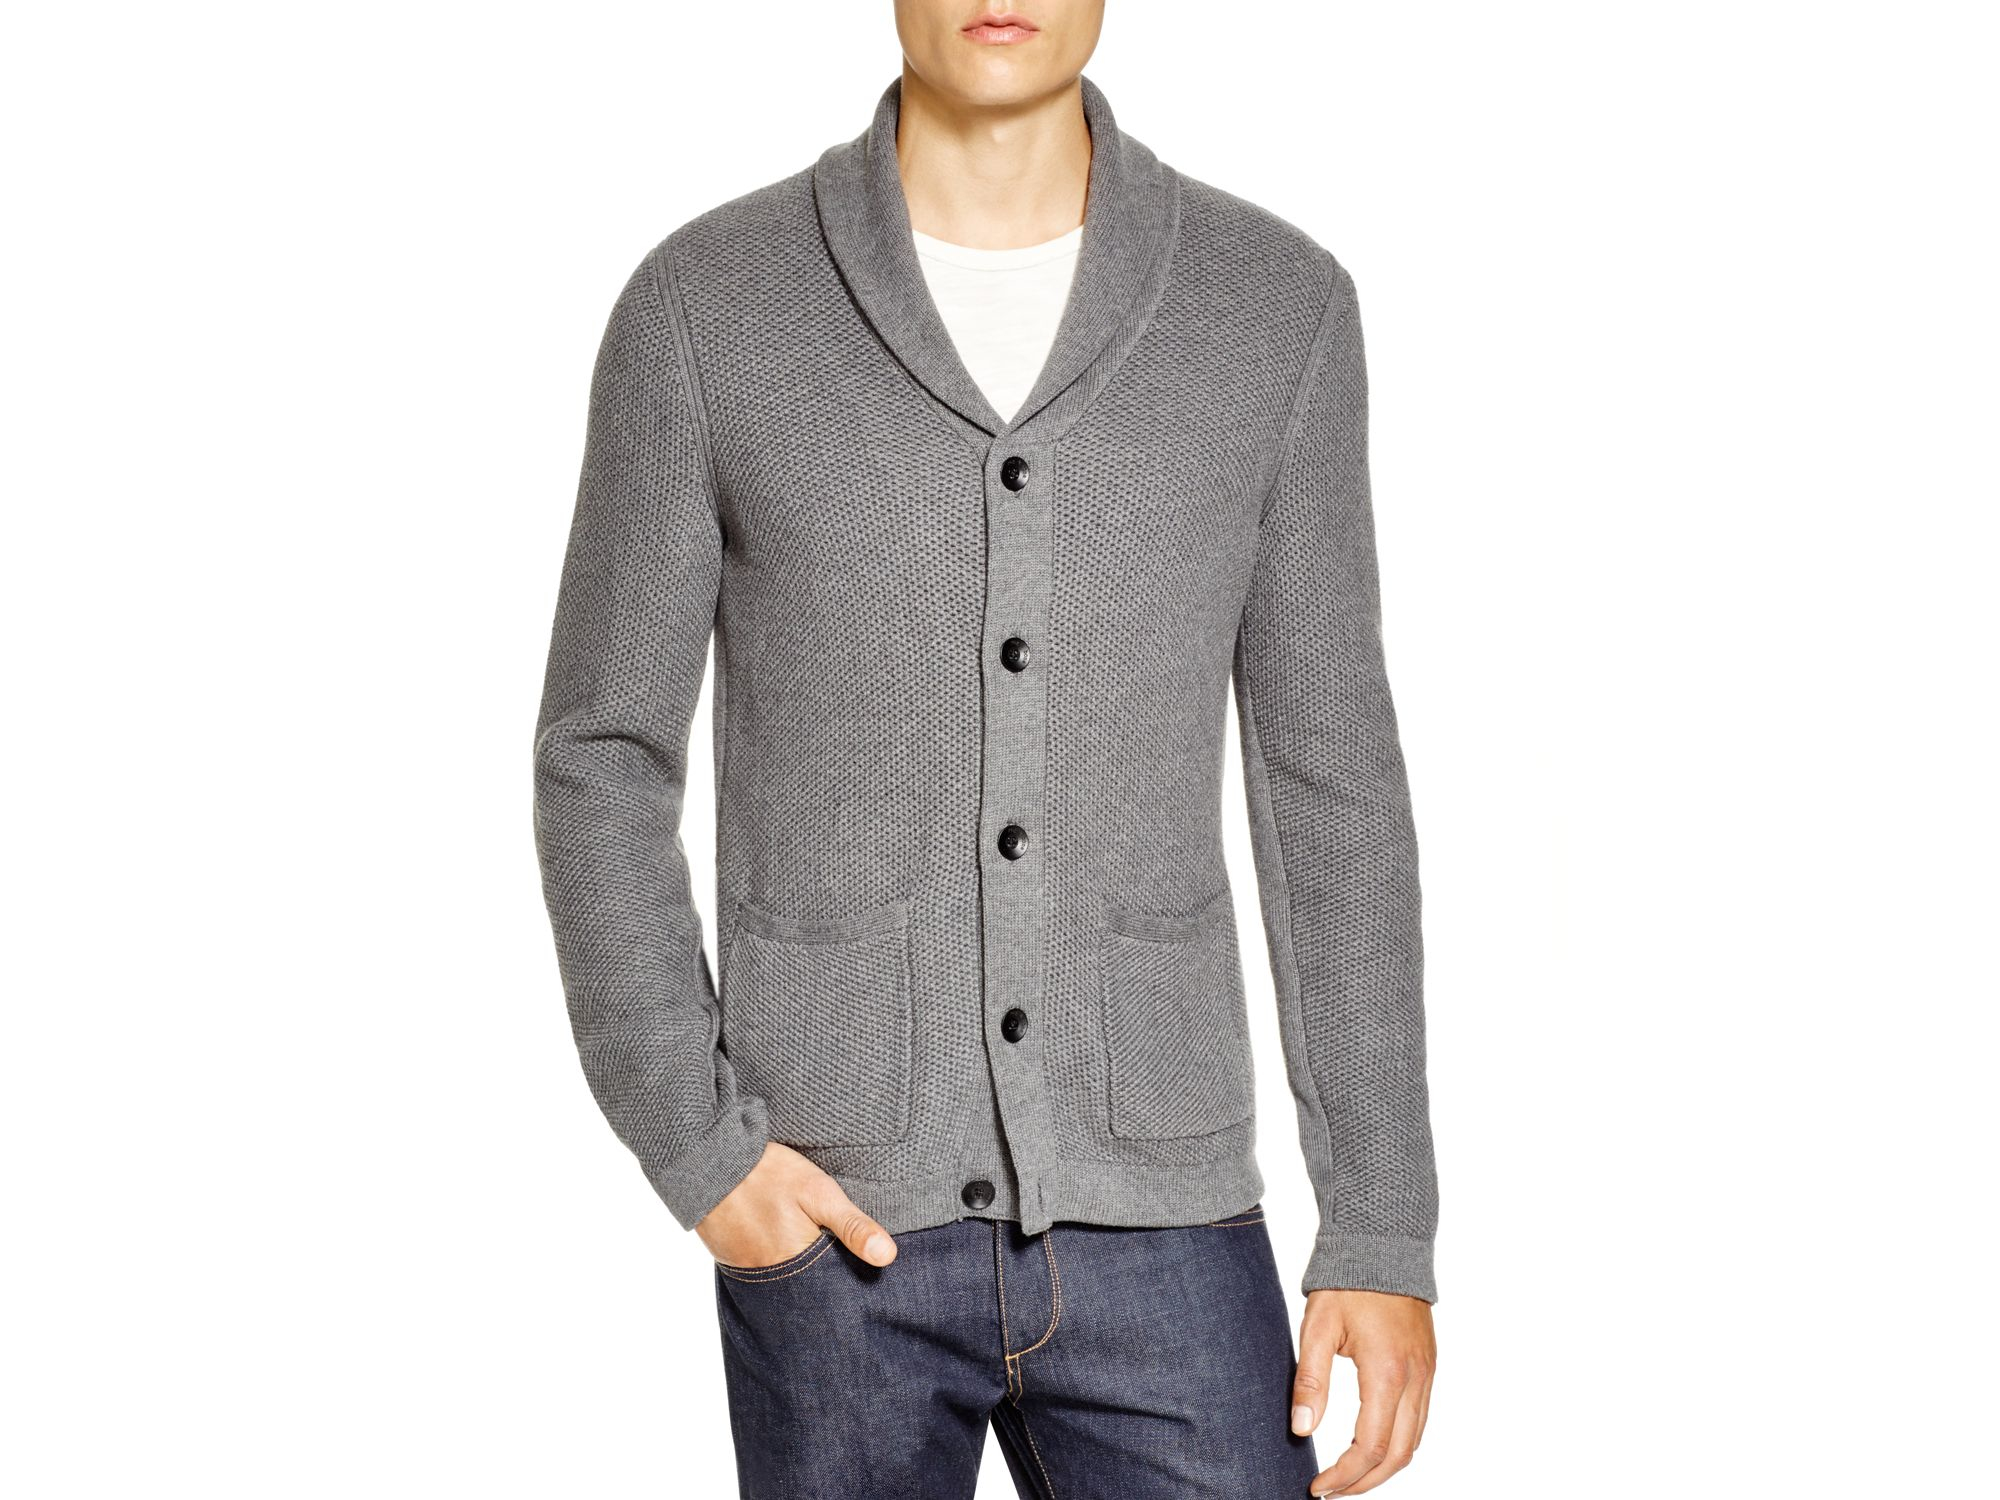 Lyst Rag Bone Shawl Collar Cardigan In Gray For Men